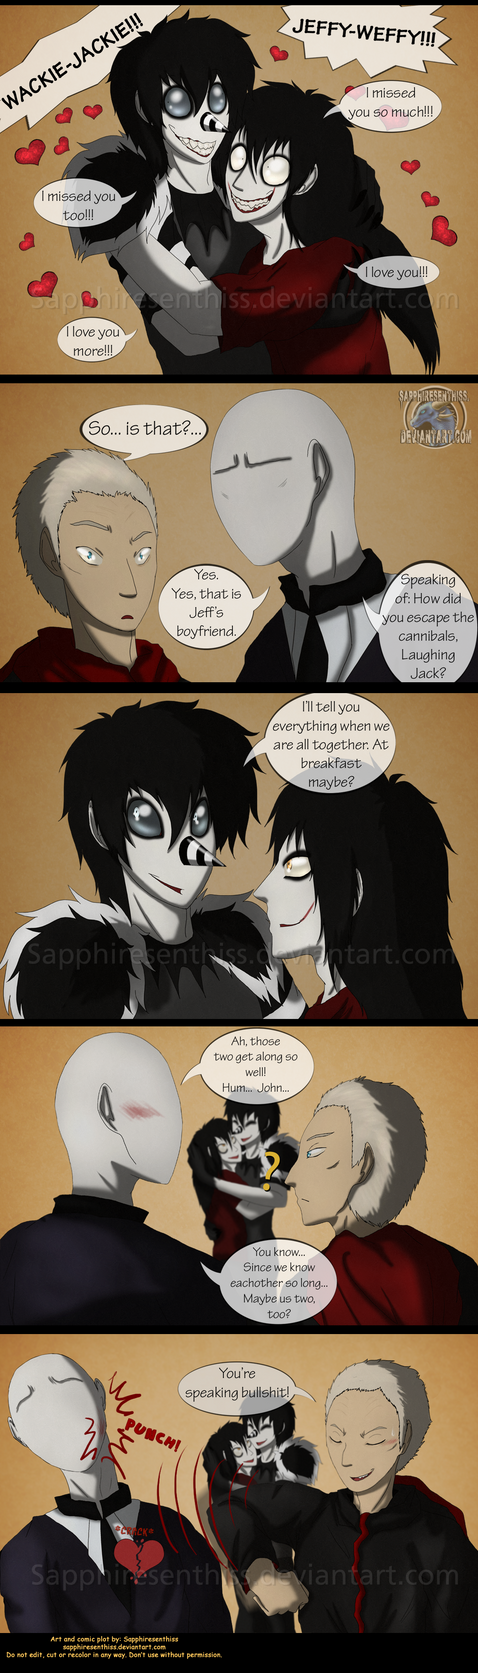 Adventures With Jeff The Killer - PAGE 162 by Sapphiresenthiss